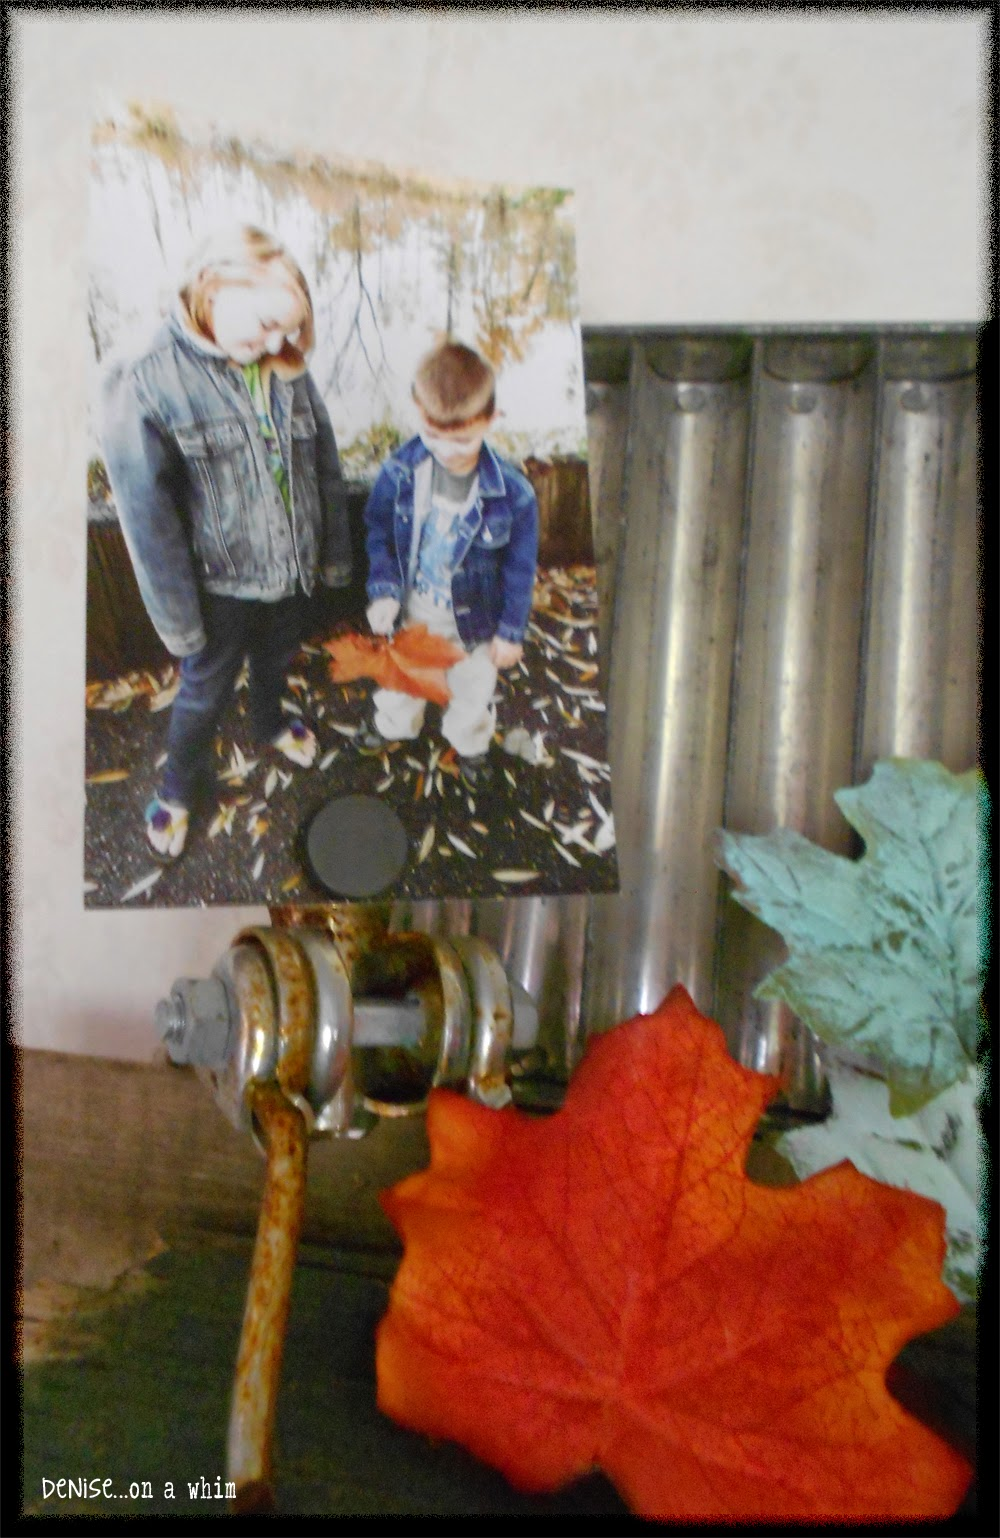 Displaying Family Photos in a Fall Vignette from Denise on a Whim